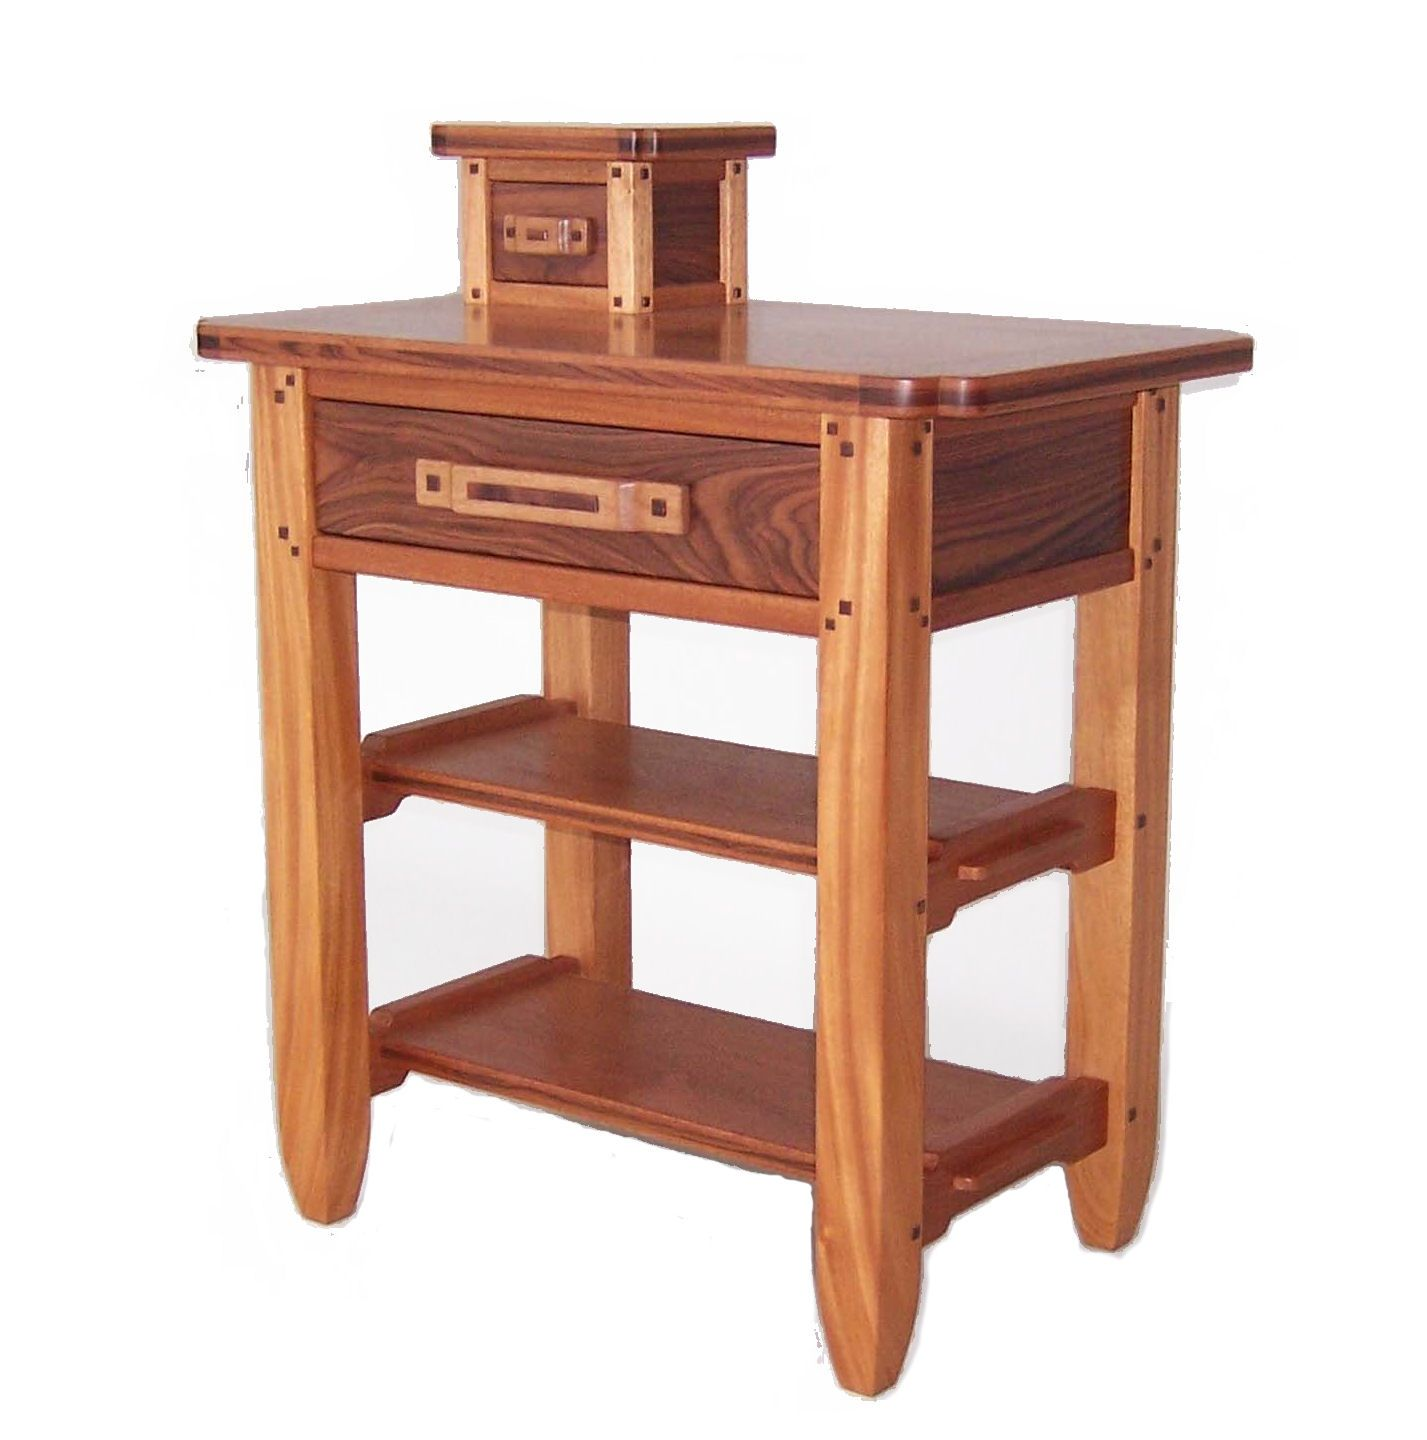 Mortise And Tenon Construction Shelves On Pinterest This End Table Was Custom Made For Truly Nolan In Naples Flor Furniture Bedroom Furniture Design End Tables